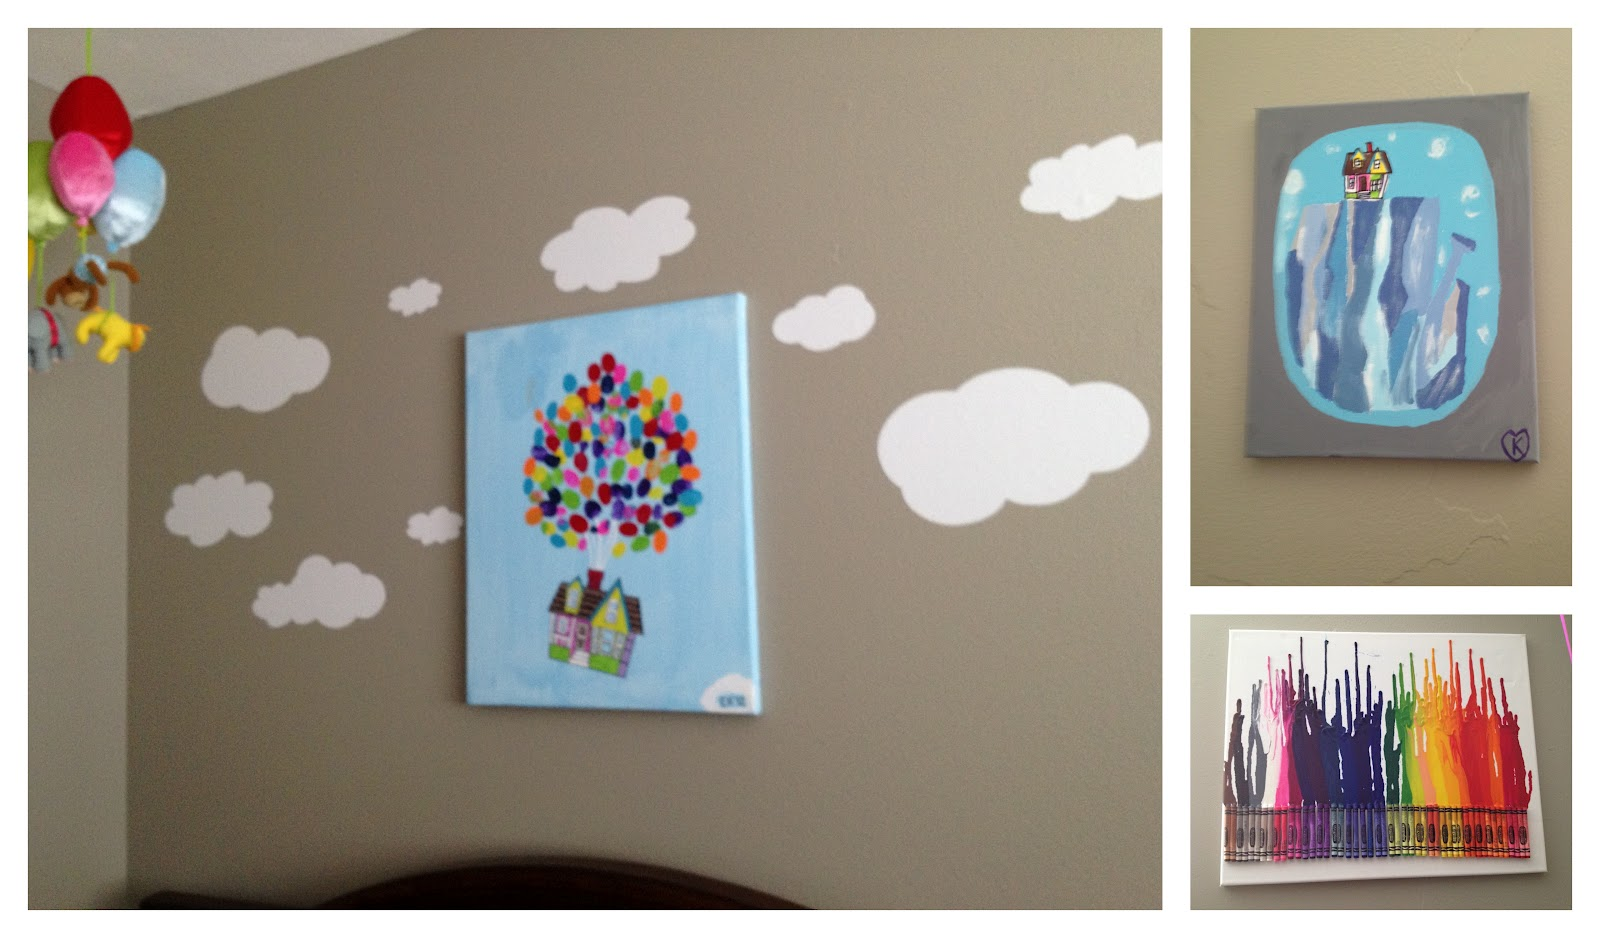 Babies R Us Changing Table Dresser Mrs. Regueiro's Plate: Introducing Cookie & Cookie's Up Themed Nursery